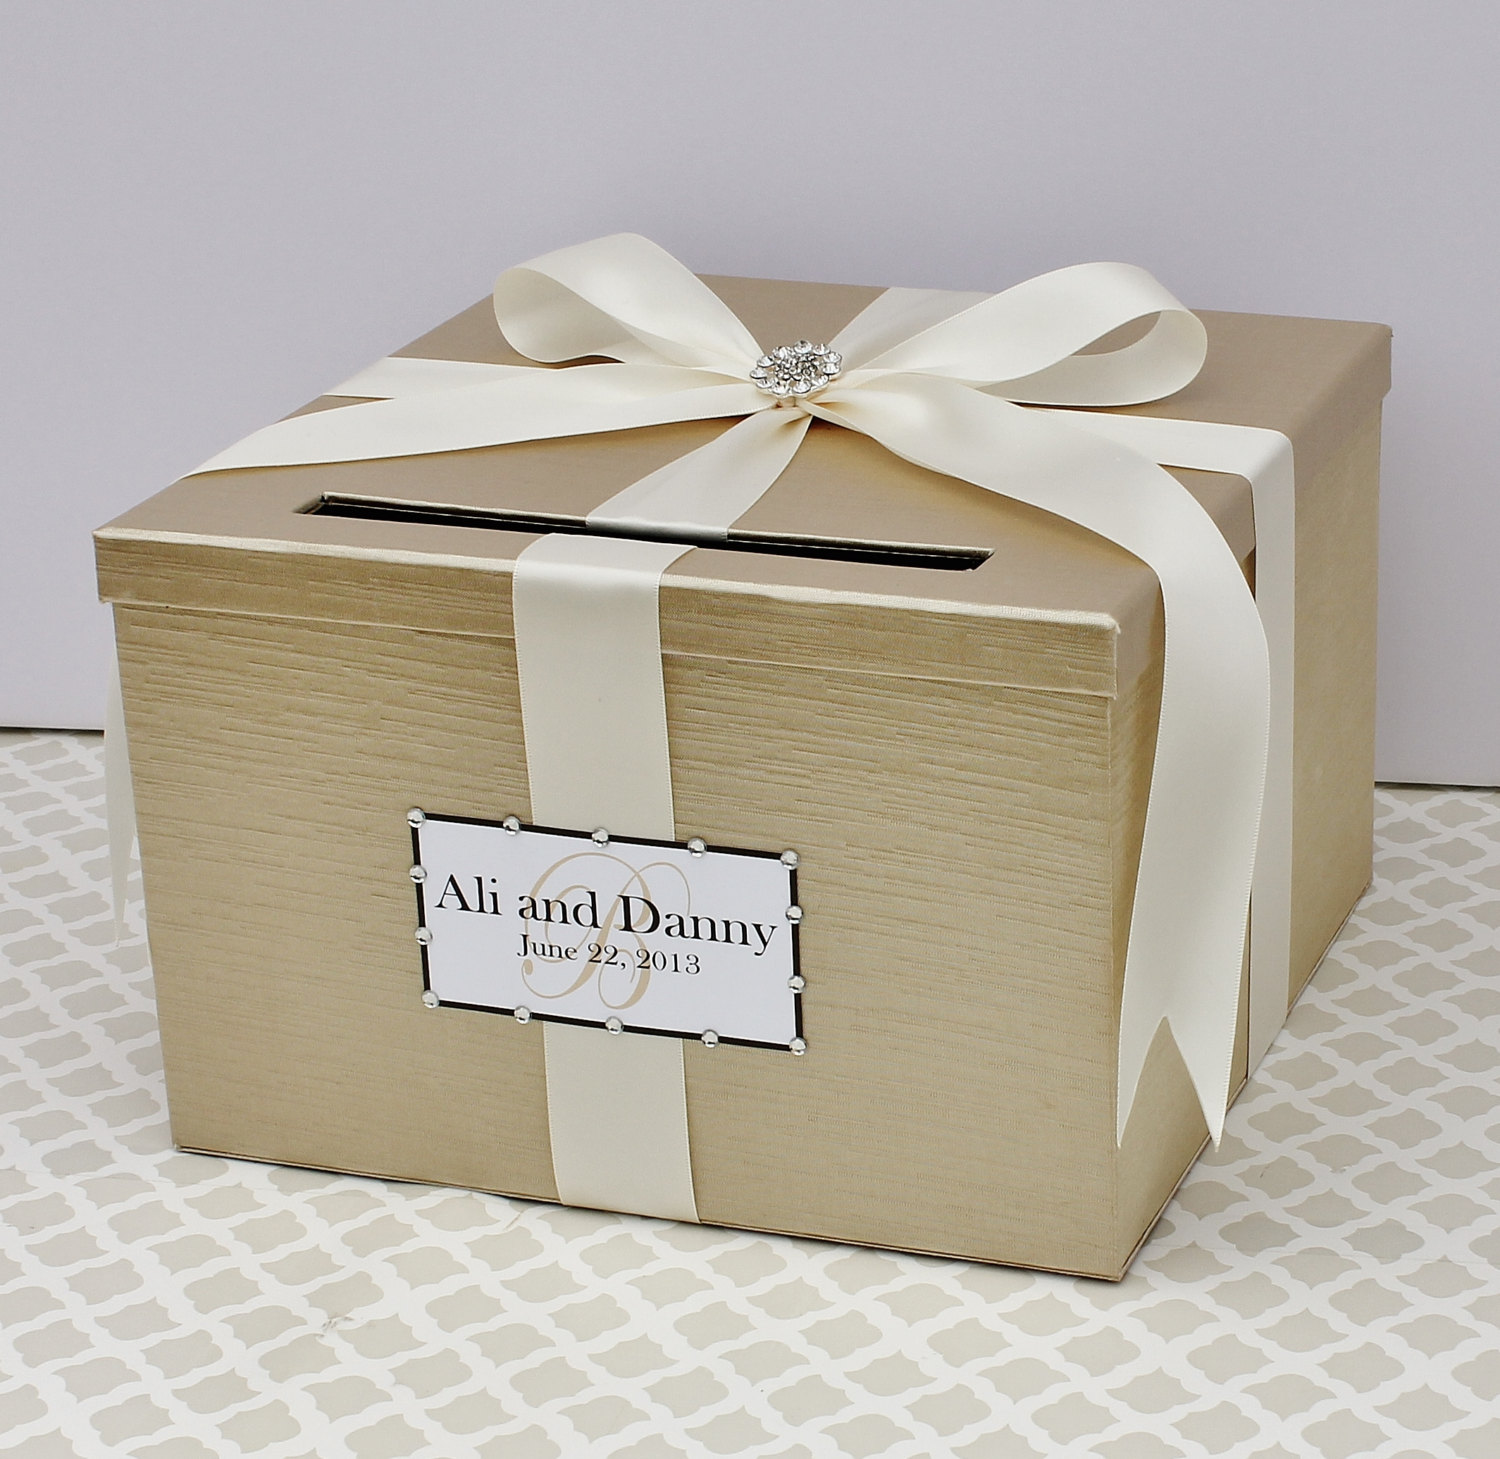 birthday gift card holder box ; best-ideas-of-gift-card-holder-wedding-with-additional-beautiful-wedding-t-card-holder-b13-in-images-gallery-m74-with-of-gift-card-holder-wedding